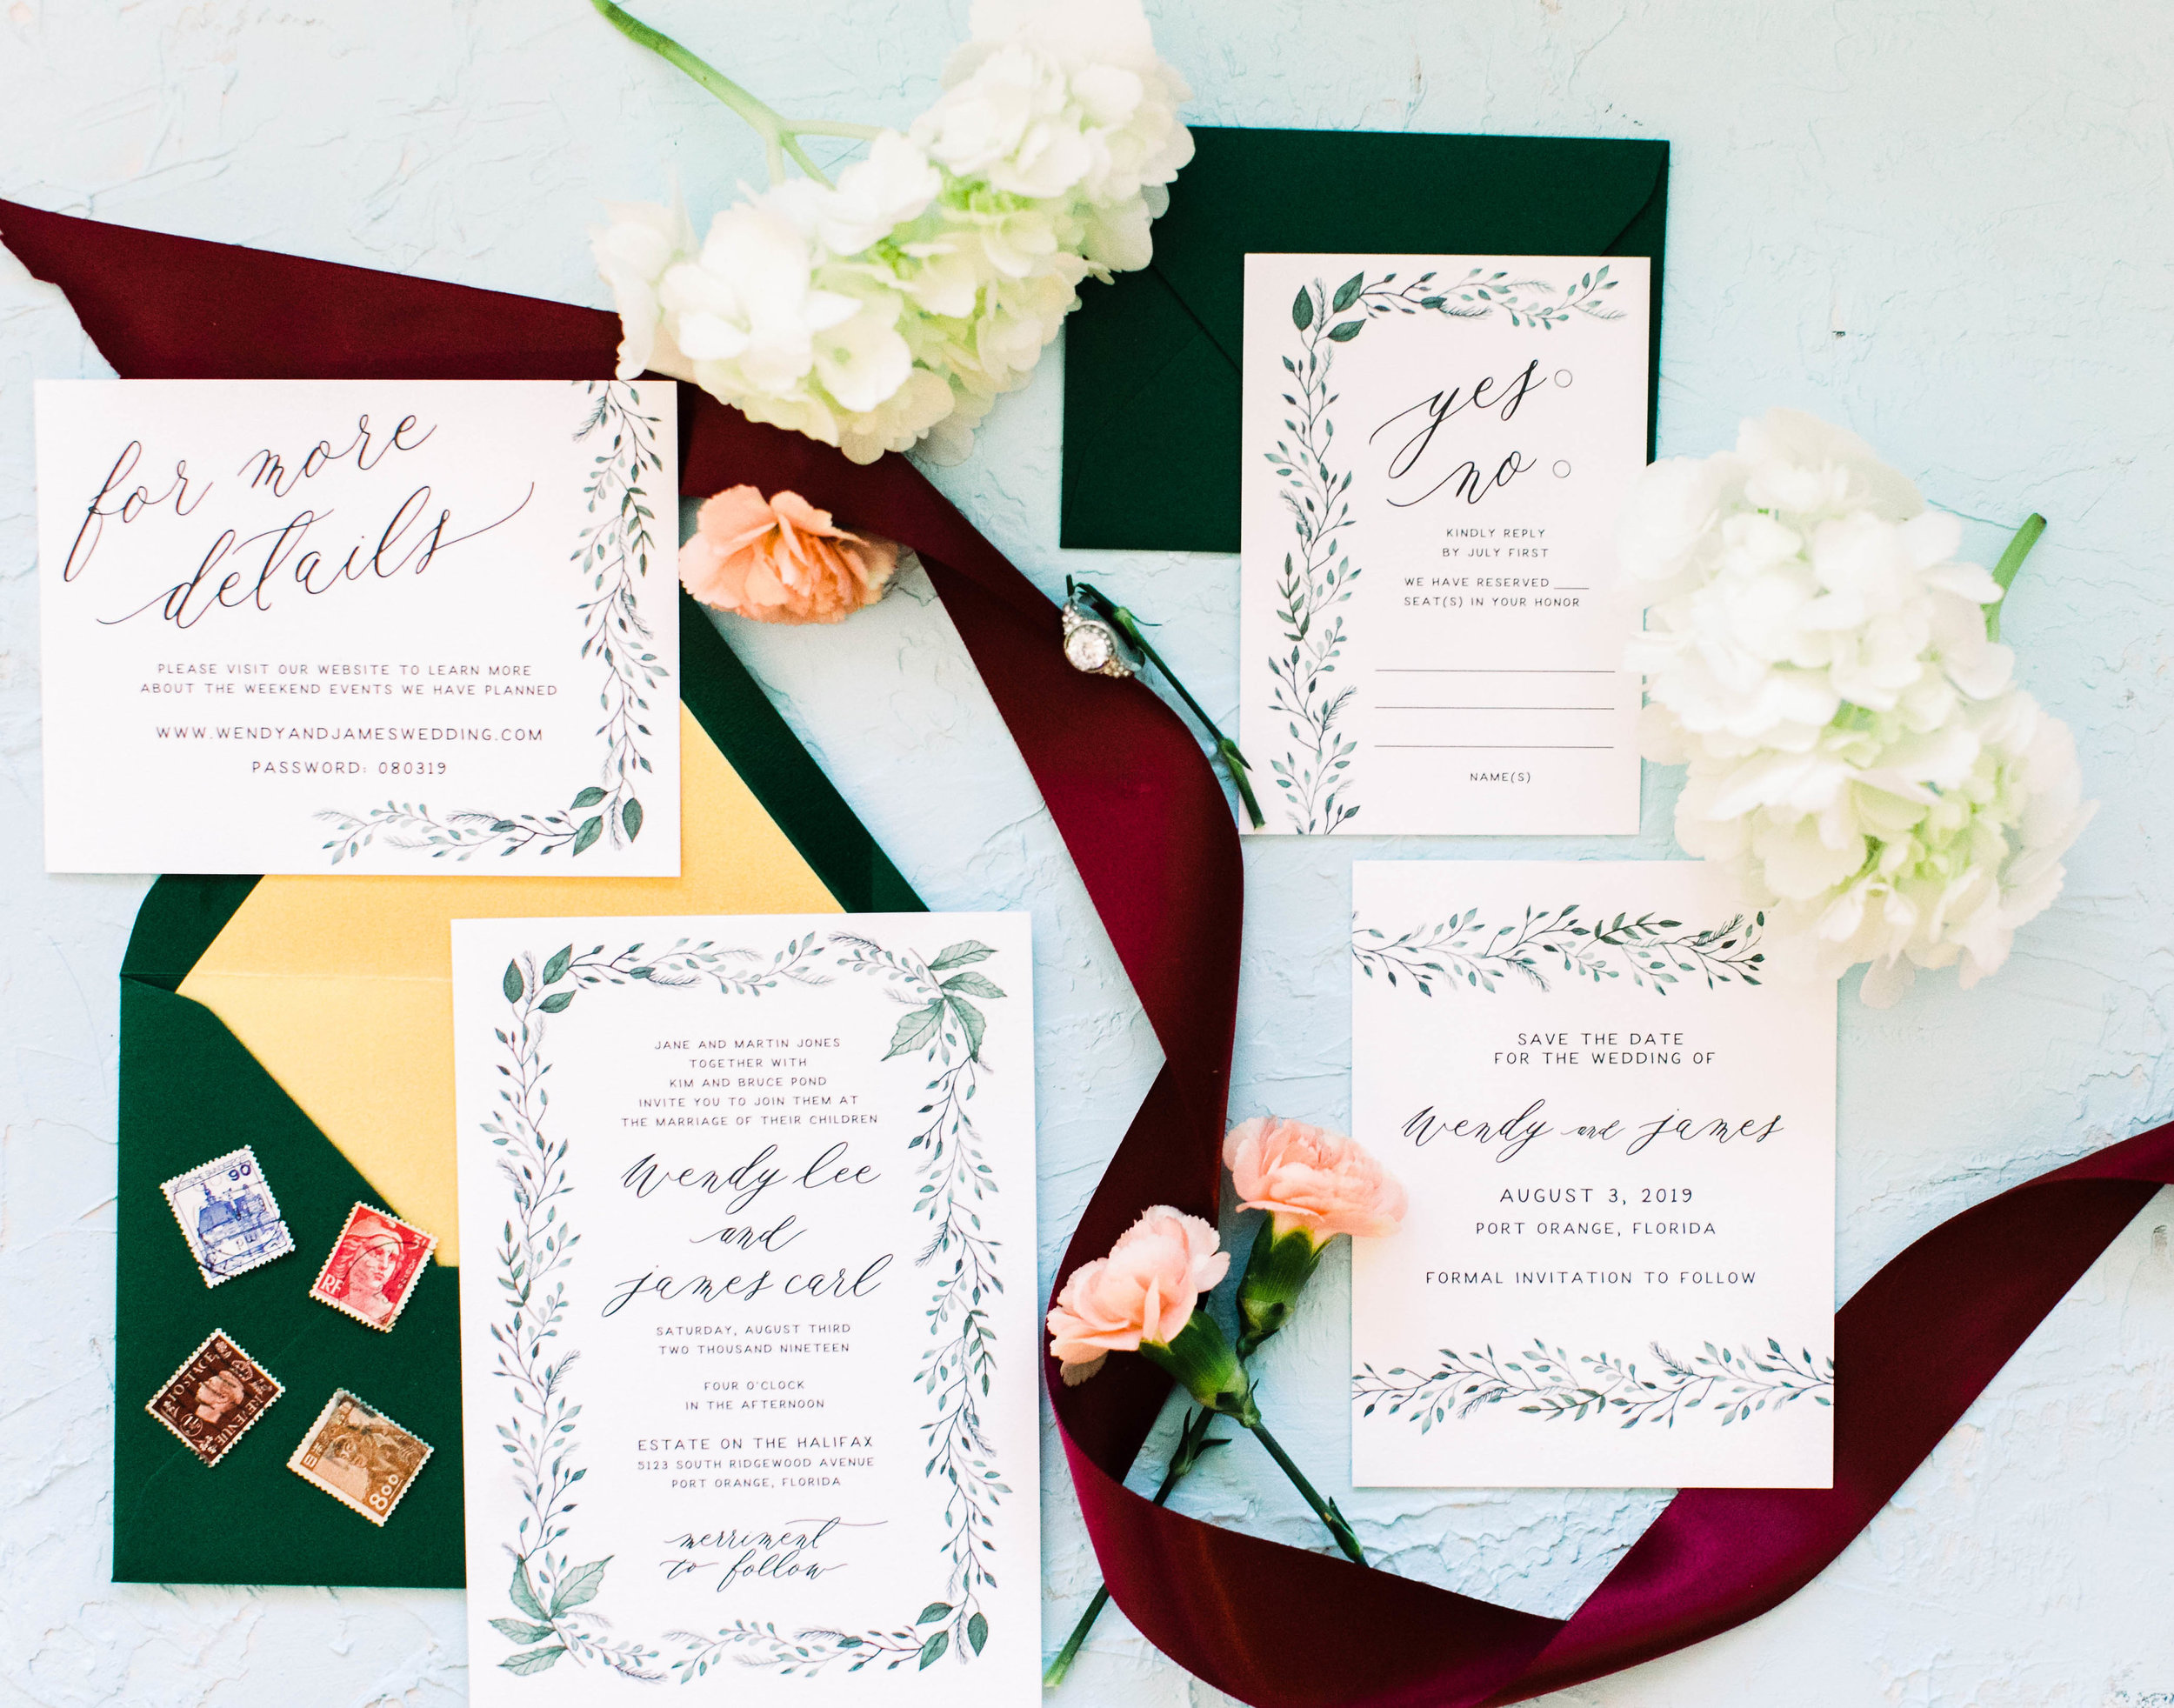 Hand Painted Watercolor Greenery Wedding Invitations -Wendy 3W2A0286.jpg